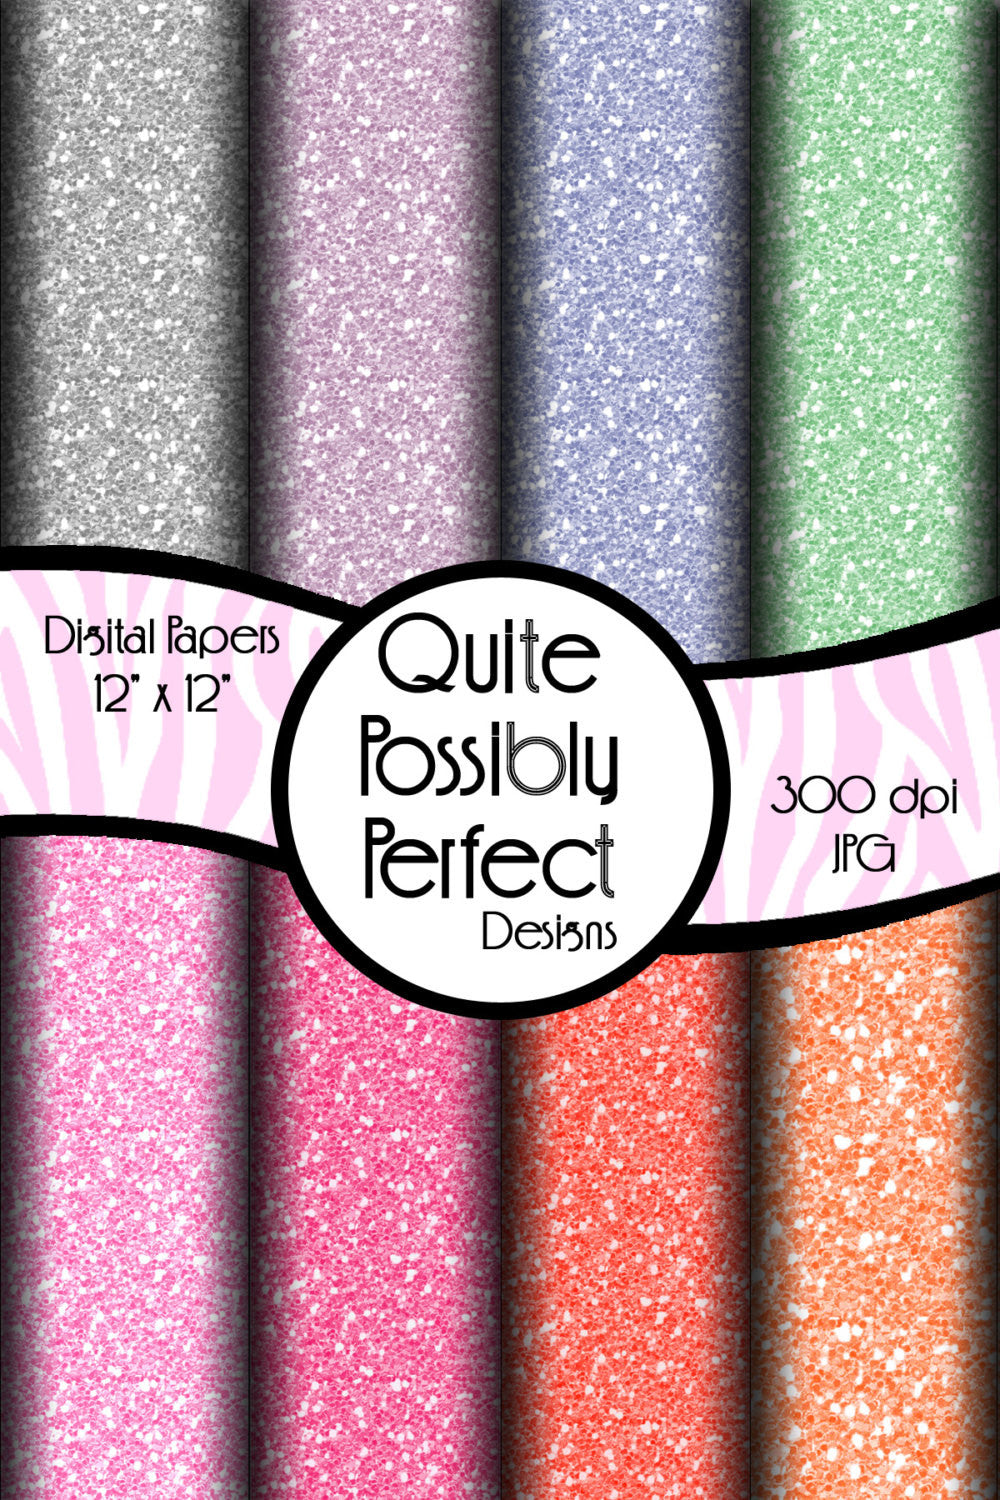 Pastel Medium Glitter Papers Digital Paper Pack Instant Download (DGP107) for Scrapbooking, Collage Sheets,Greeting Cards, Bottle Caps